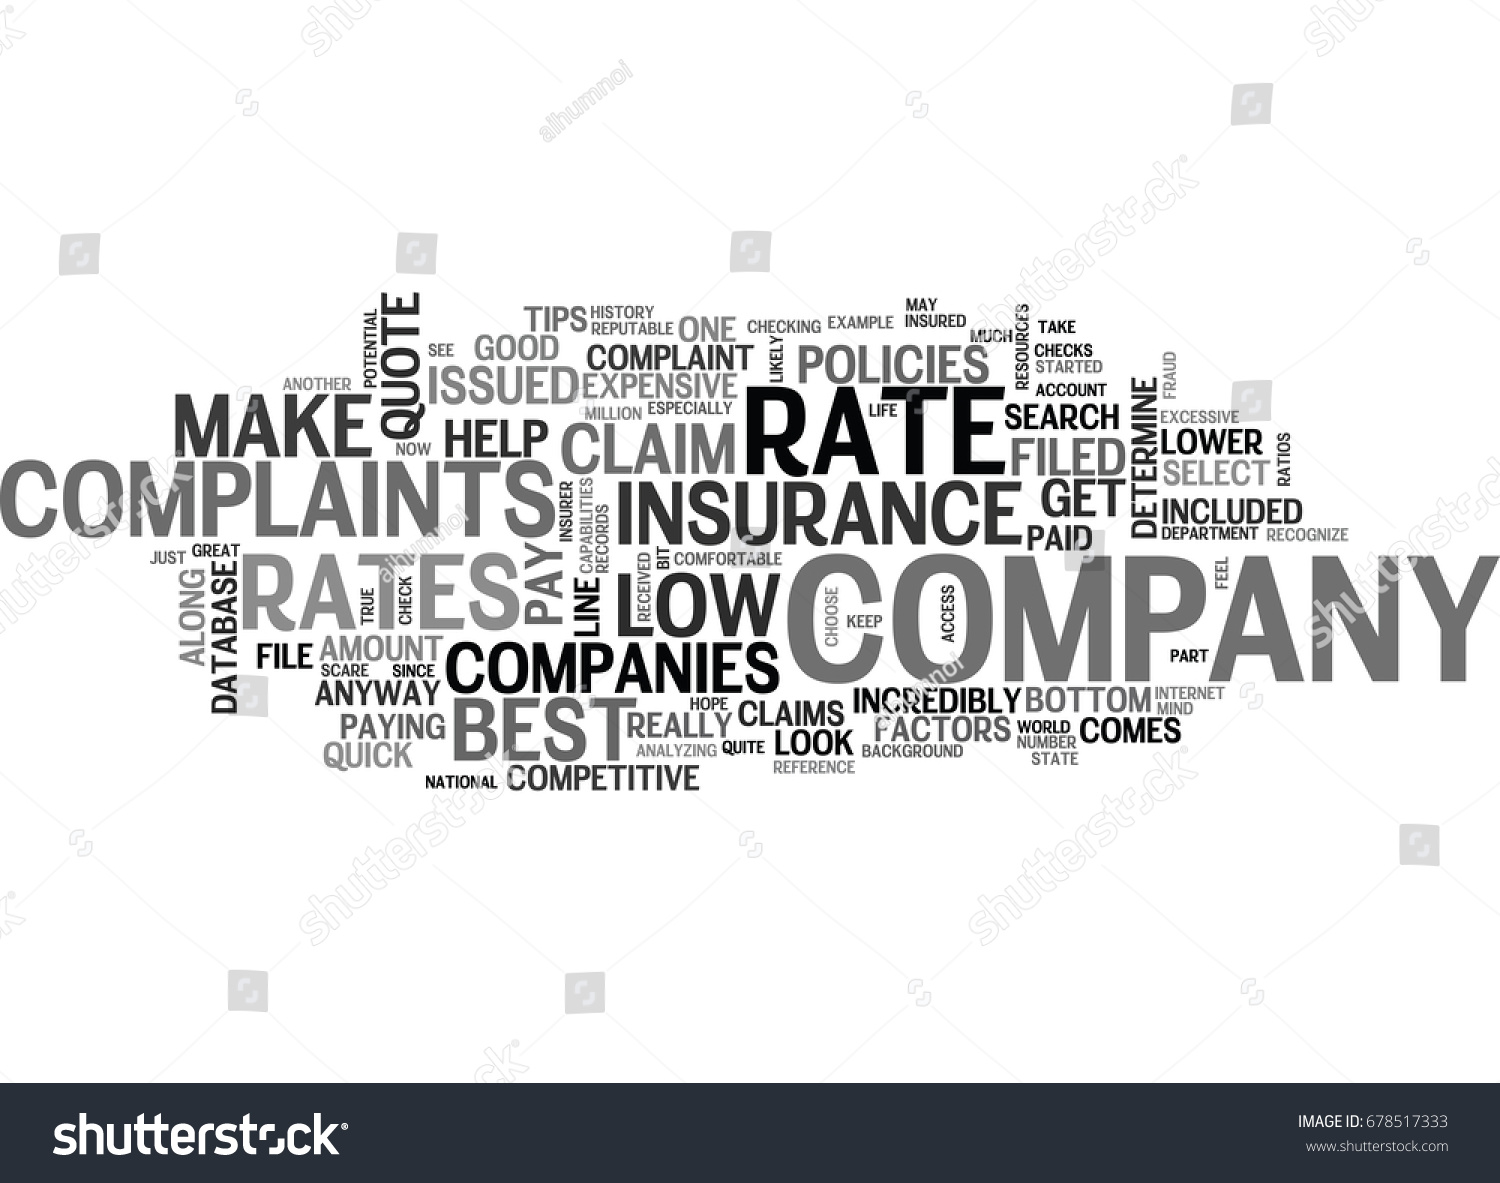 BEST LIFE INSURANCE QUOTE HOW TO RECOGNIZE IT TEXT WORD CLOUD CONCEPT